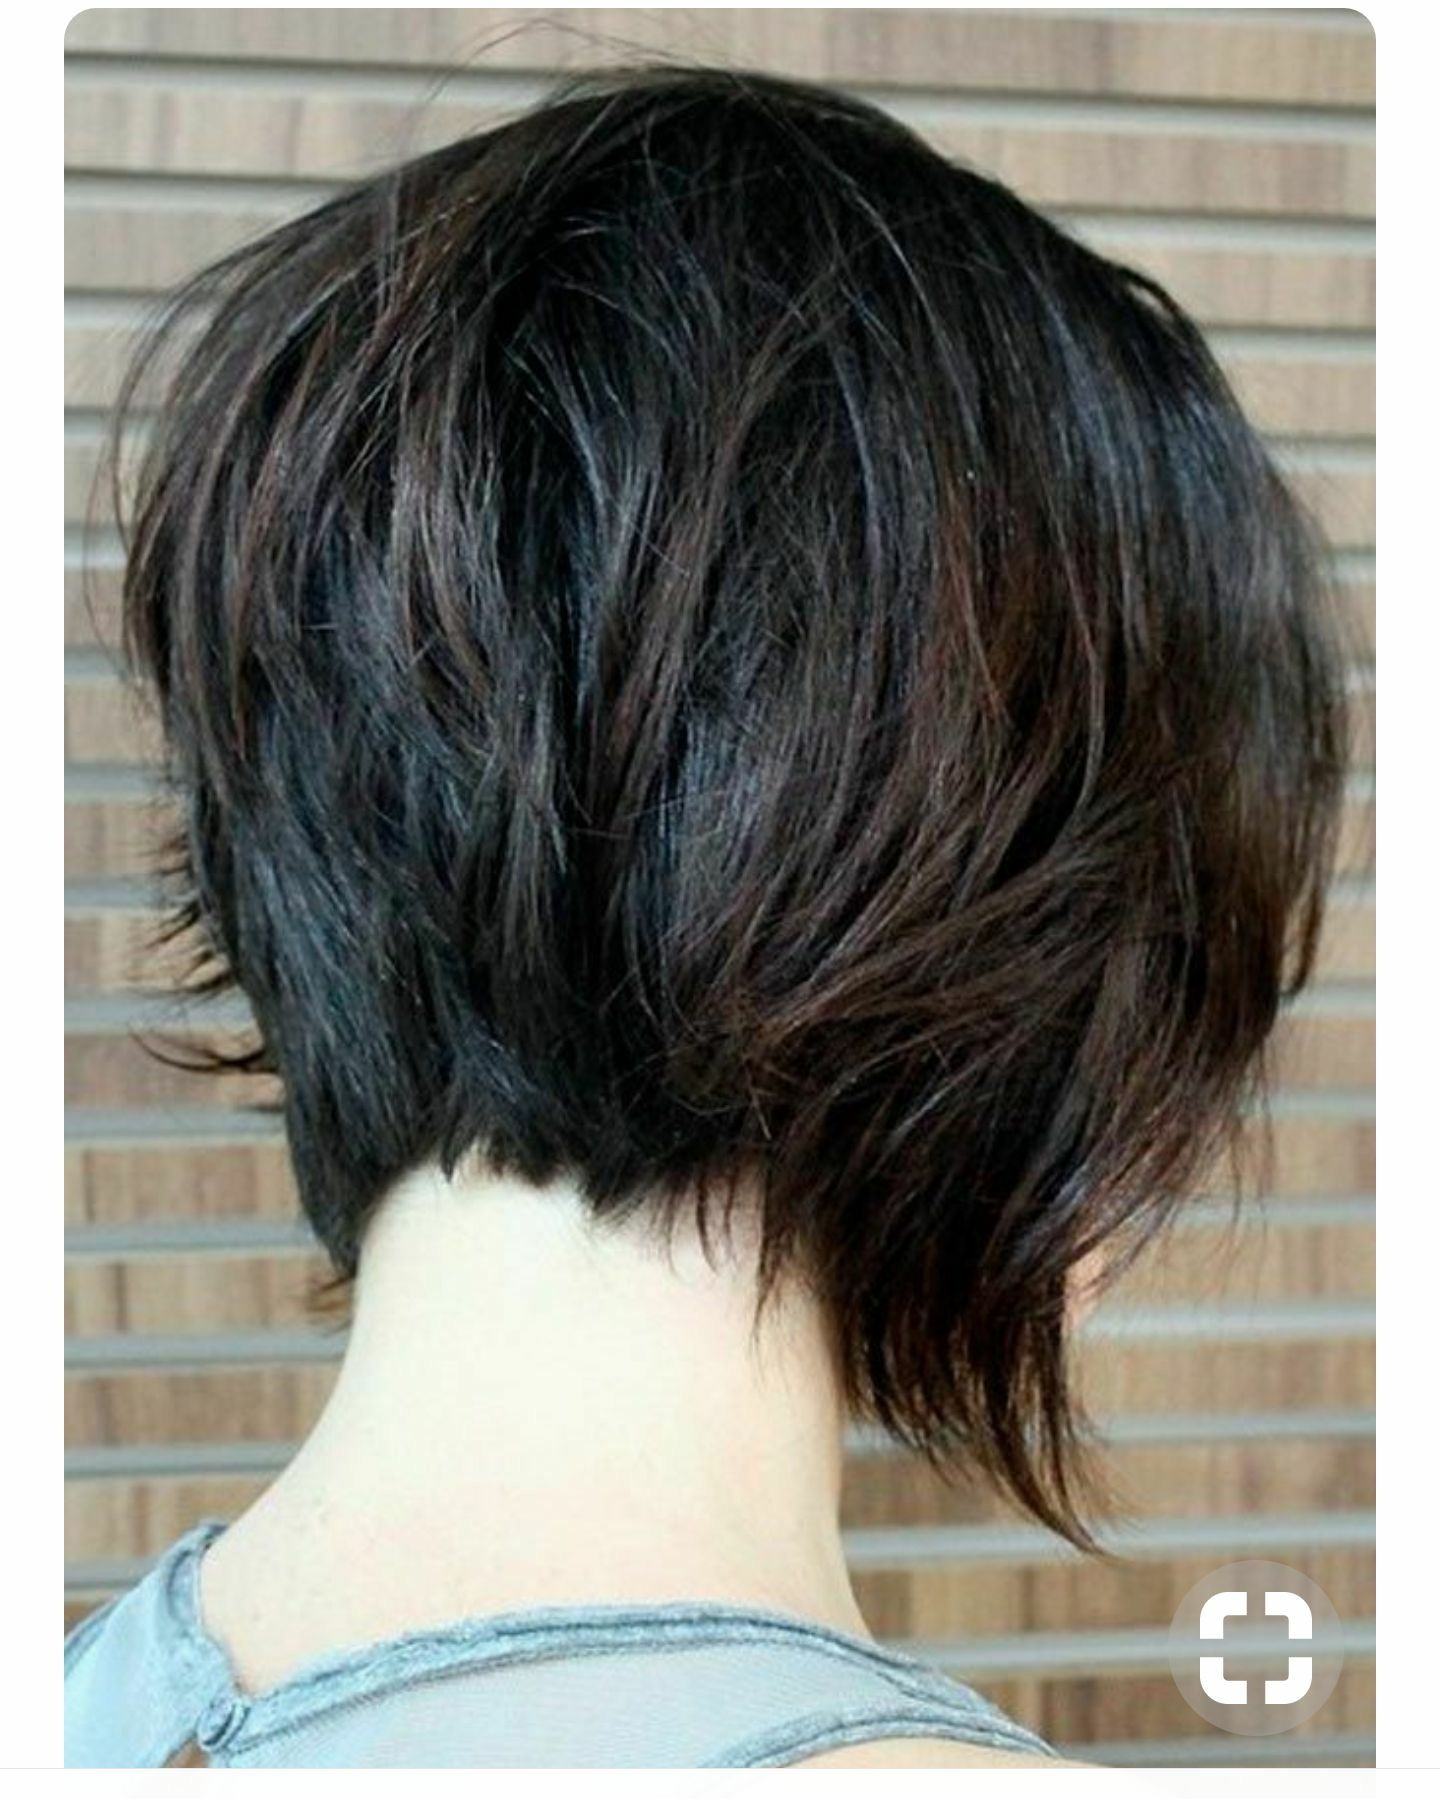 20 Sexy Stacked Haircuts for Short Hair: You Can Easily Copy